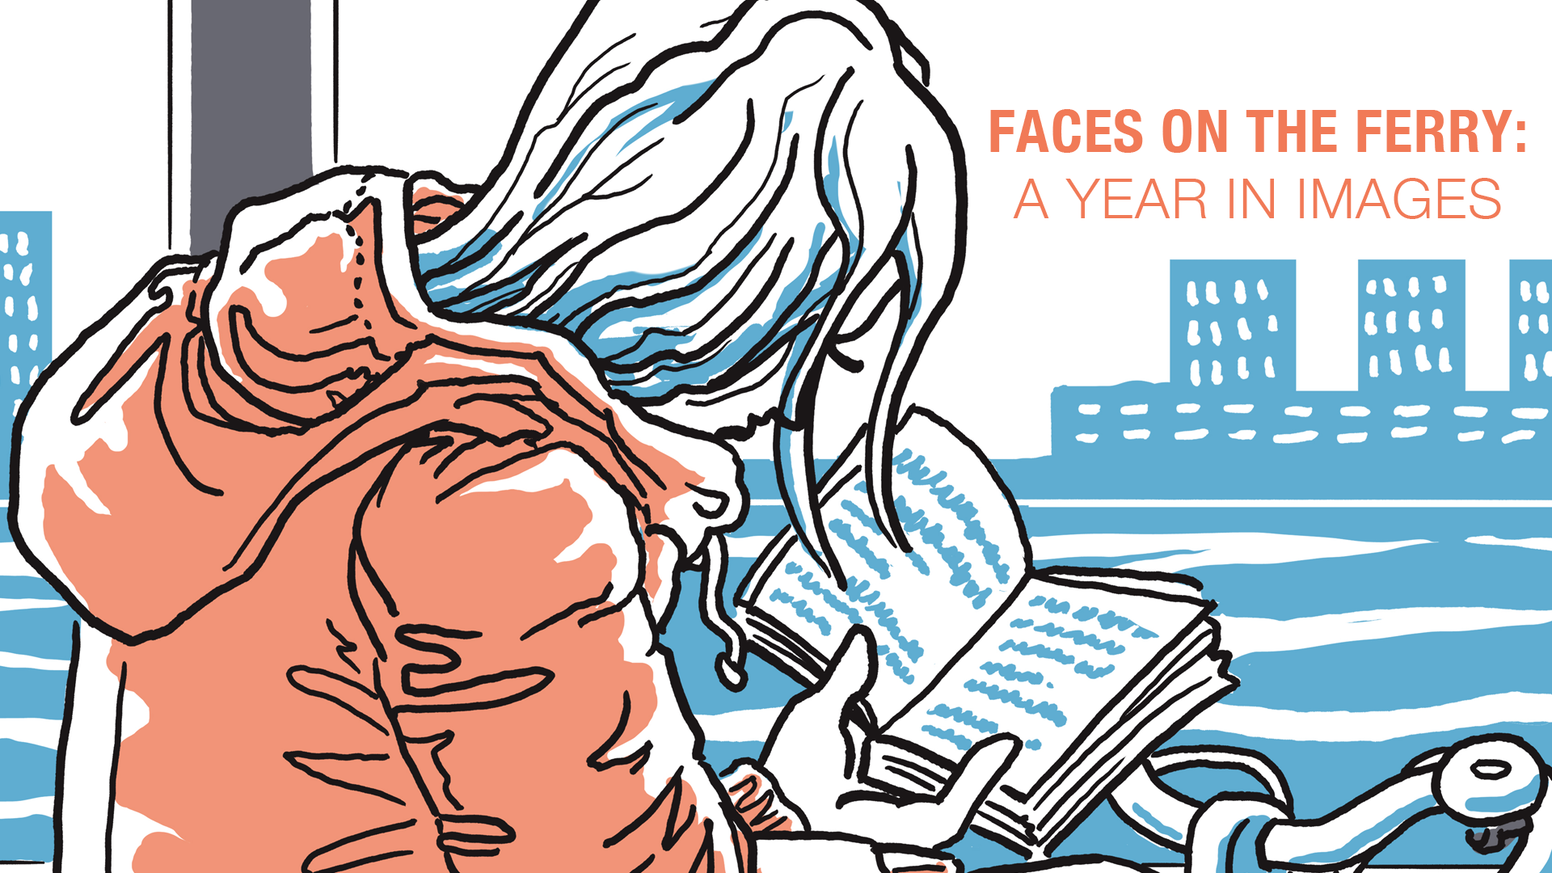 Faces on the Ferry: A Year in Images by Rachelle Meyer » Updates